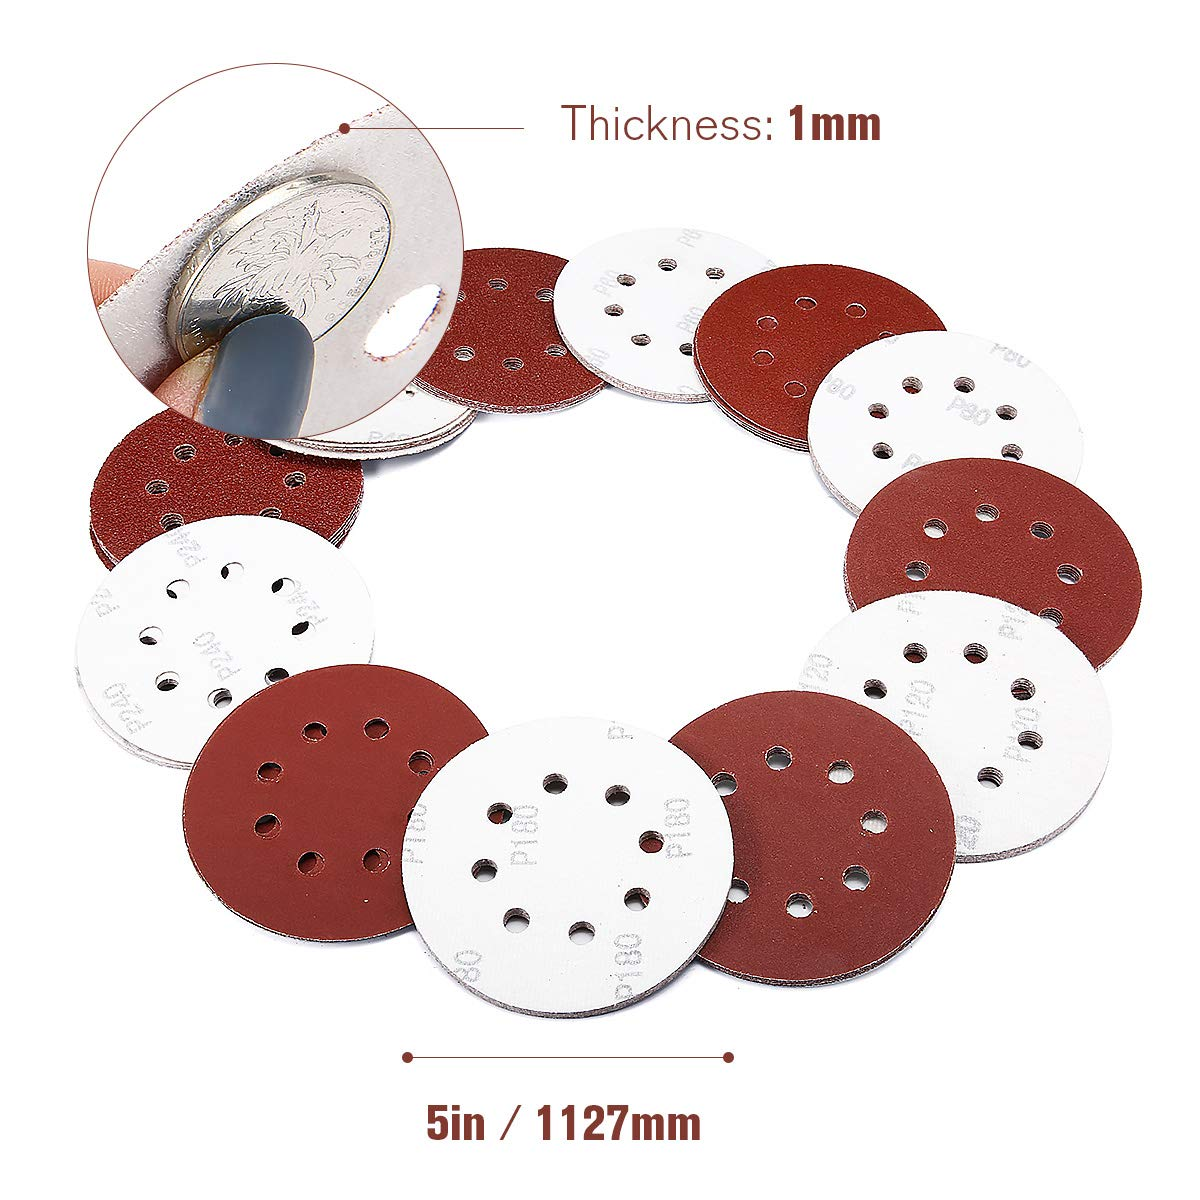 Jeteven 6 inch 60 Pcs 80-400 Grit Sanding Discs Pad Sander Paper Discs for Cleaning and Polishing